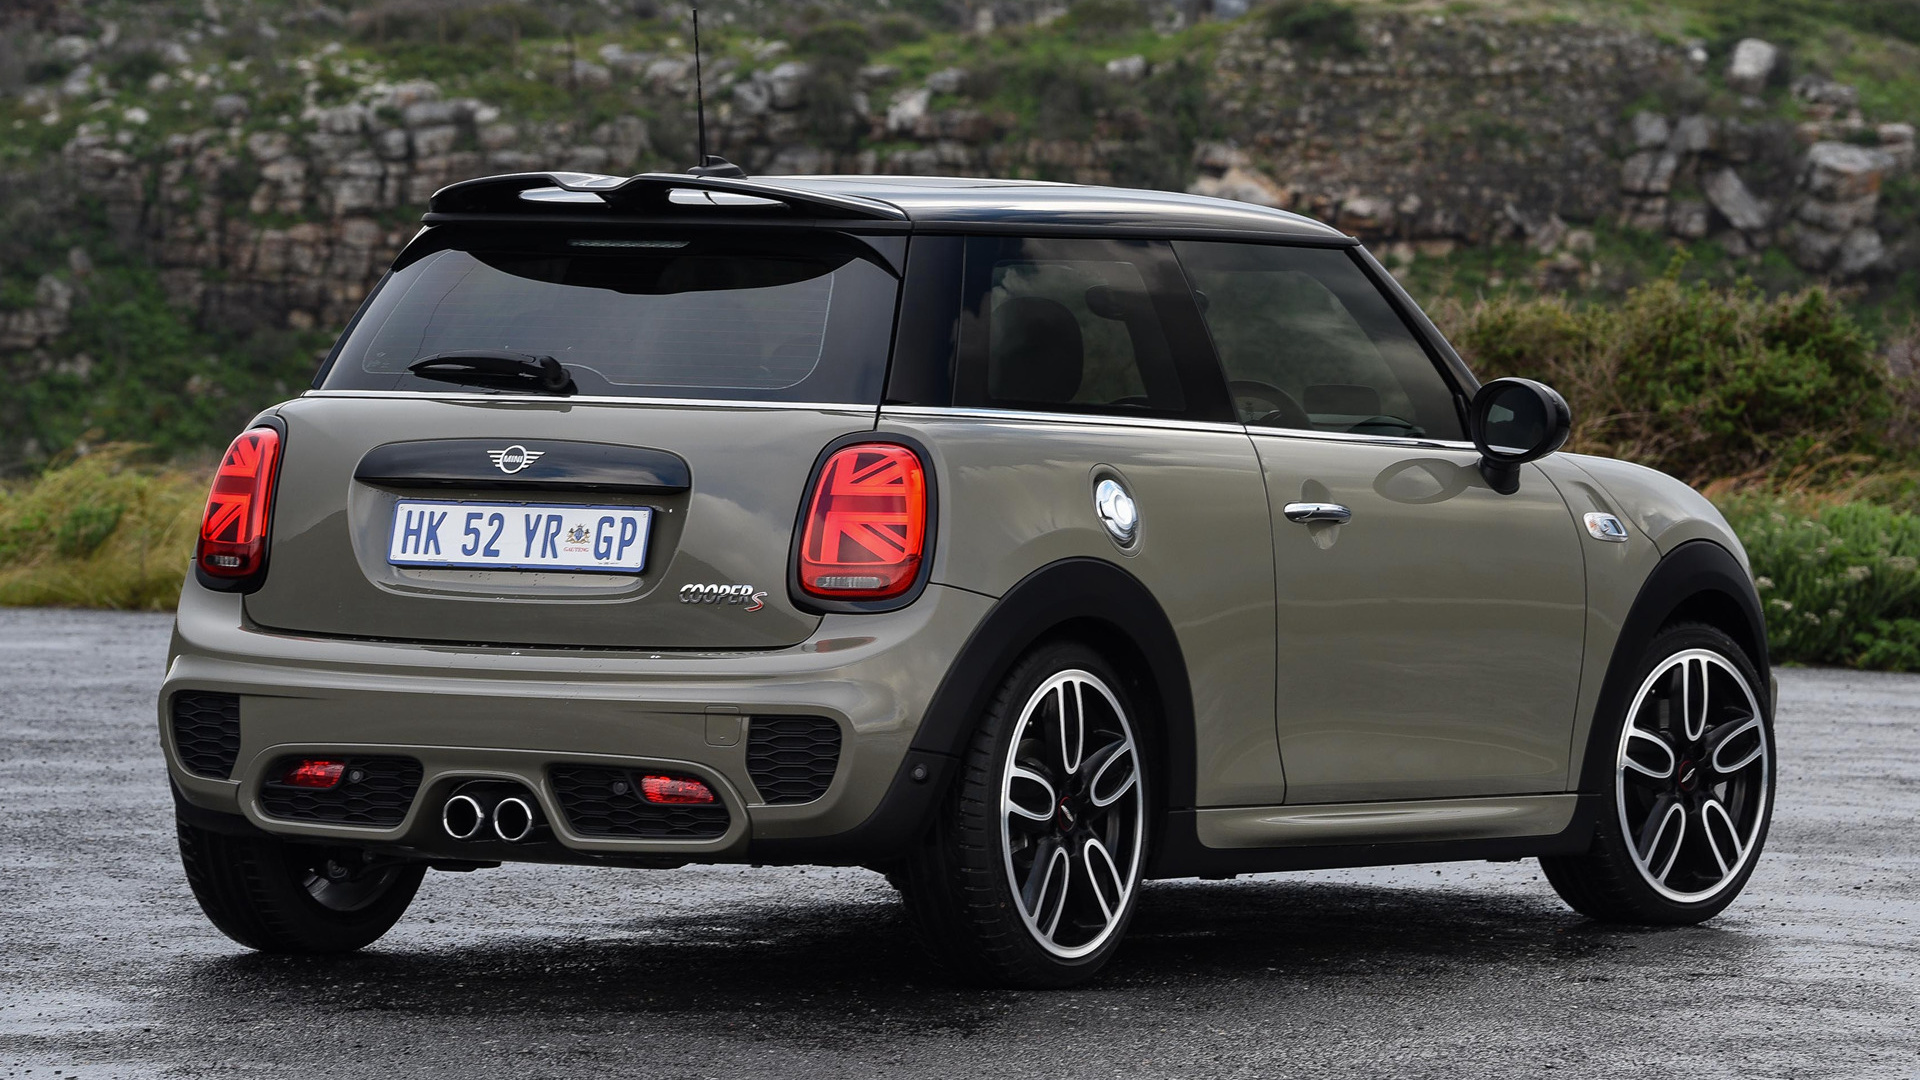 2018 Mini Cooper S Jcw Package Hd Wallpaper Background Image